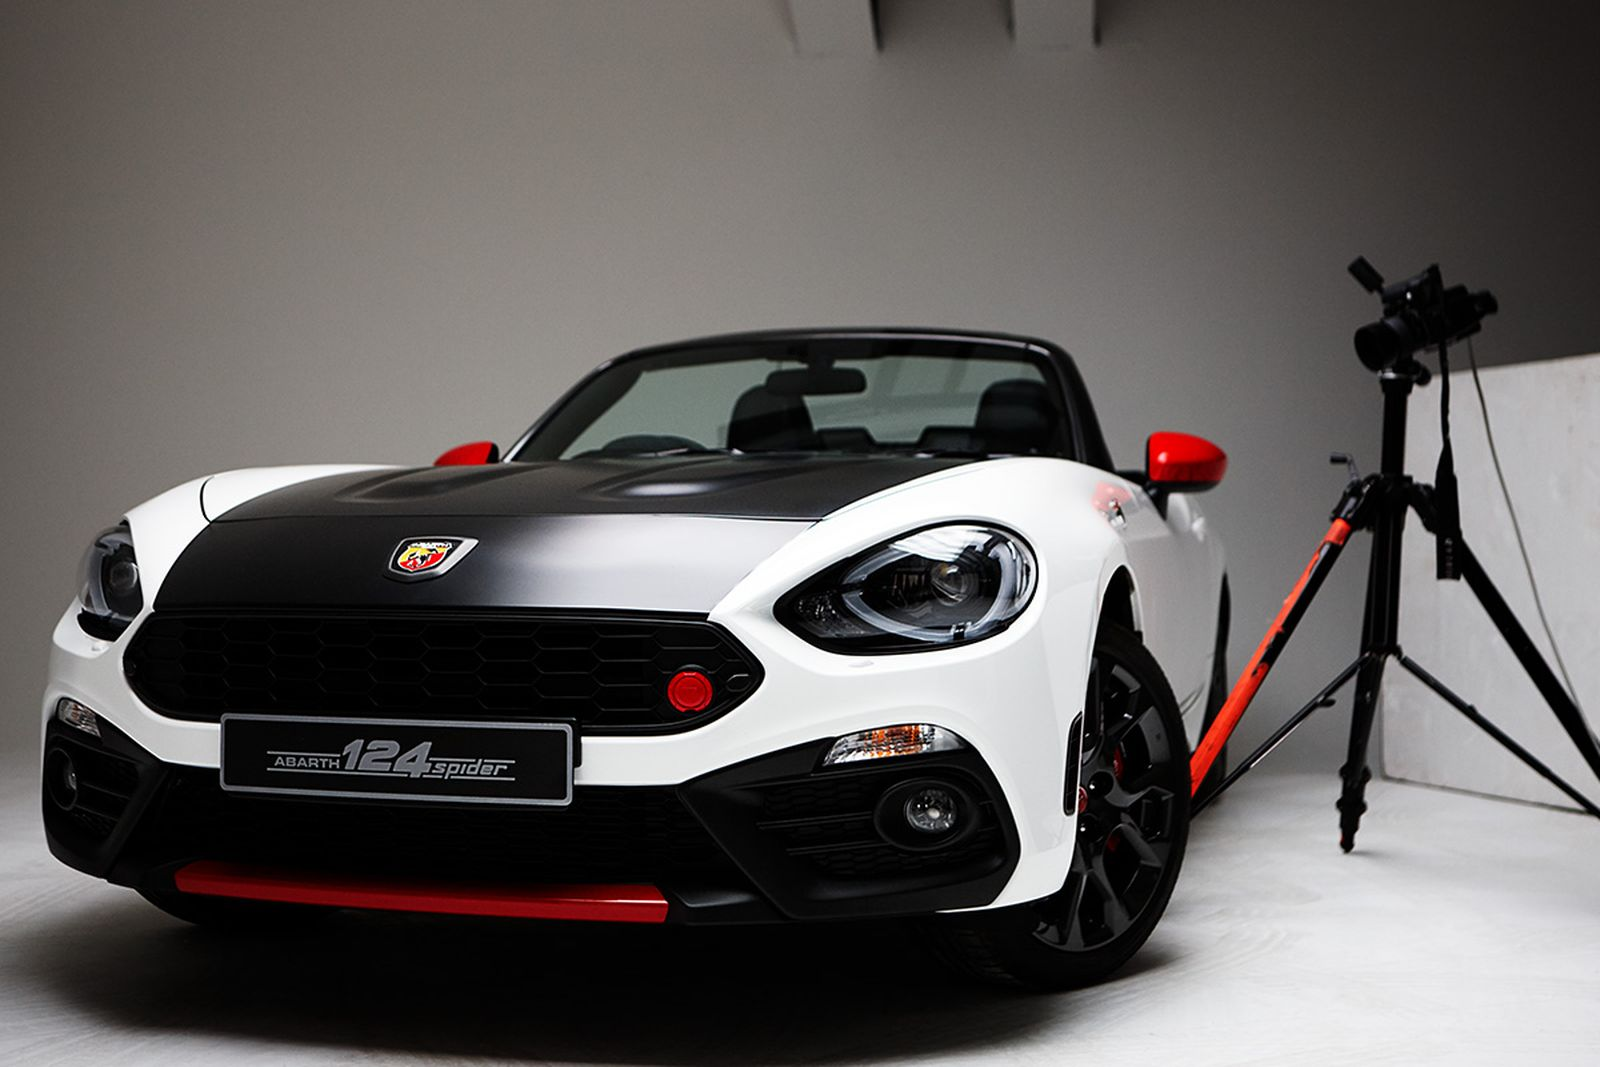 abarth-hunger-magazine-rankin-04